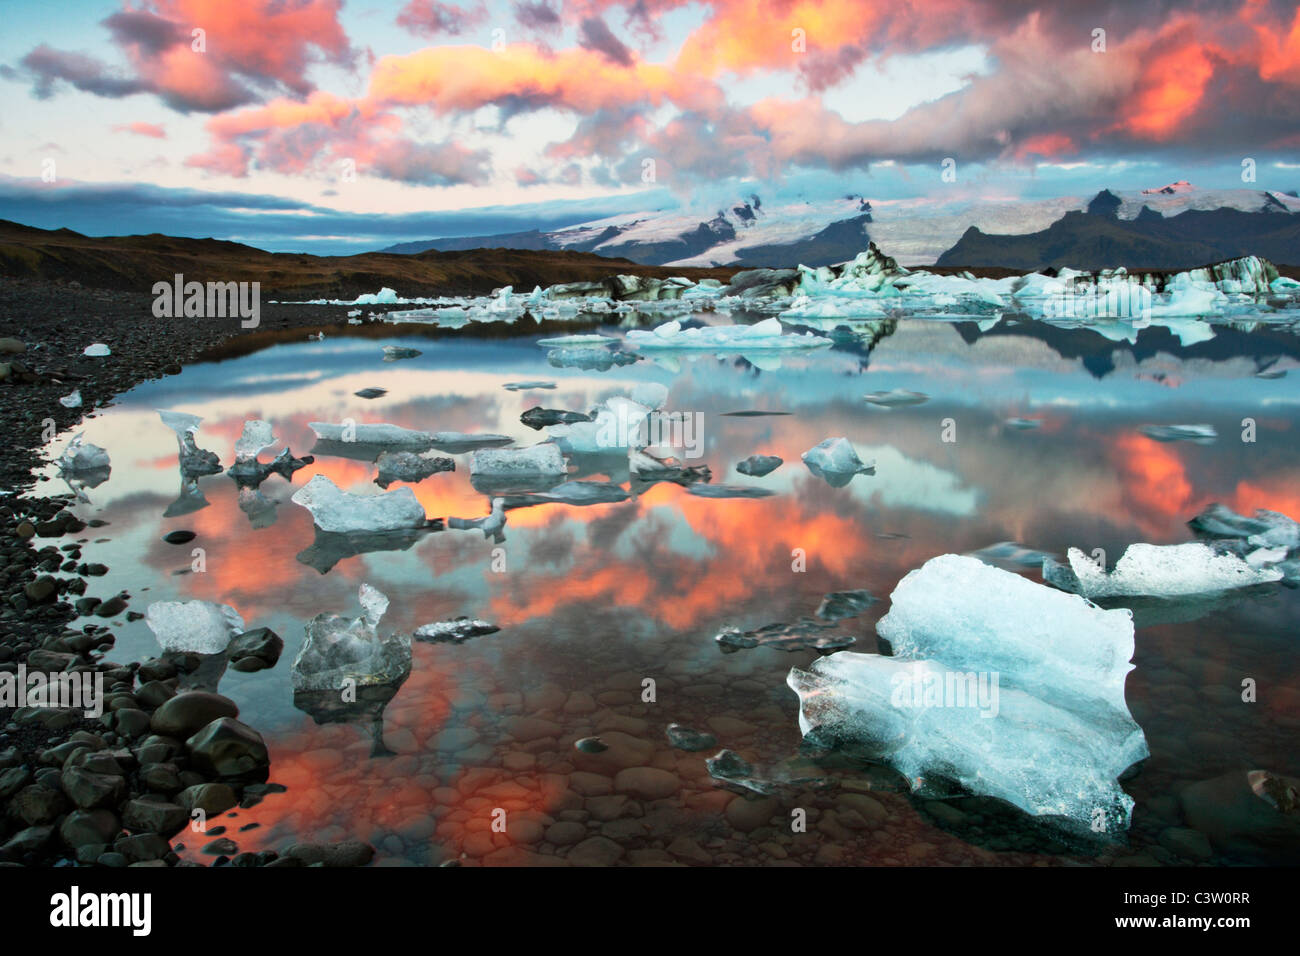 Warm and cold tones collide on a wonderful September morning at Jokulsarlon Lagoon in Iceland - Stock Image